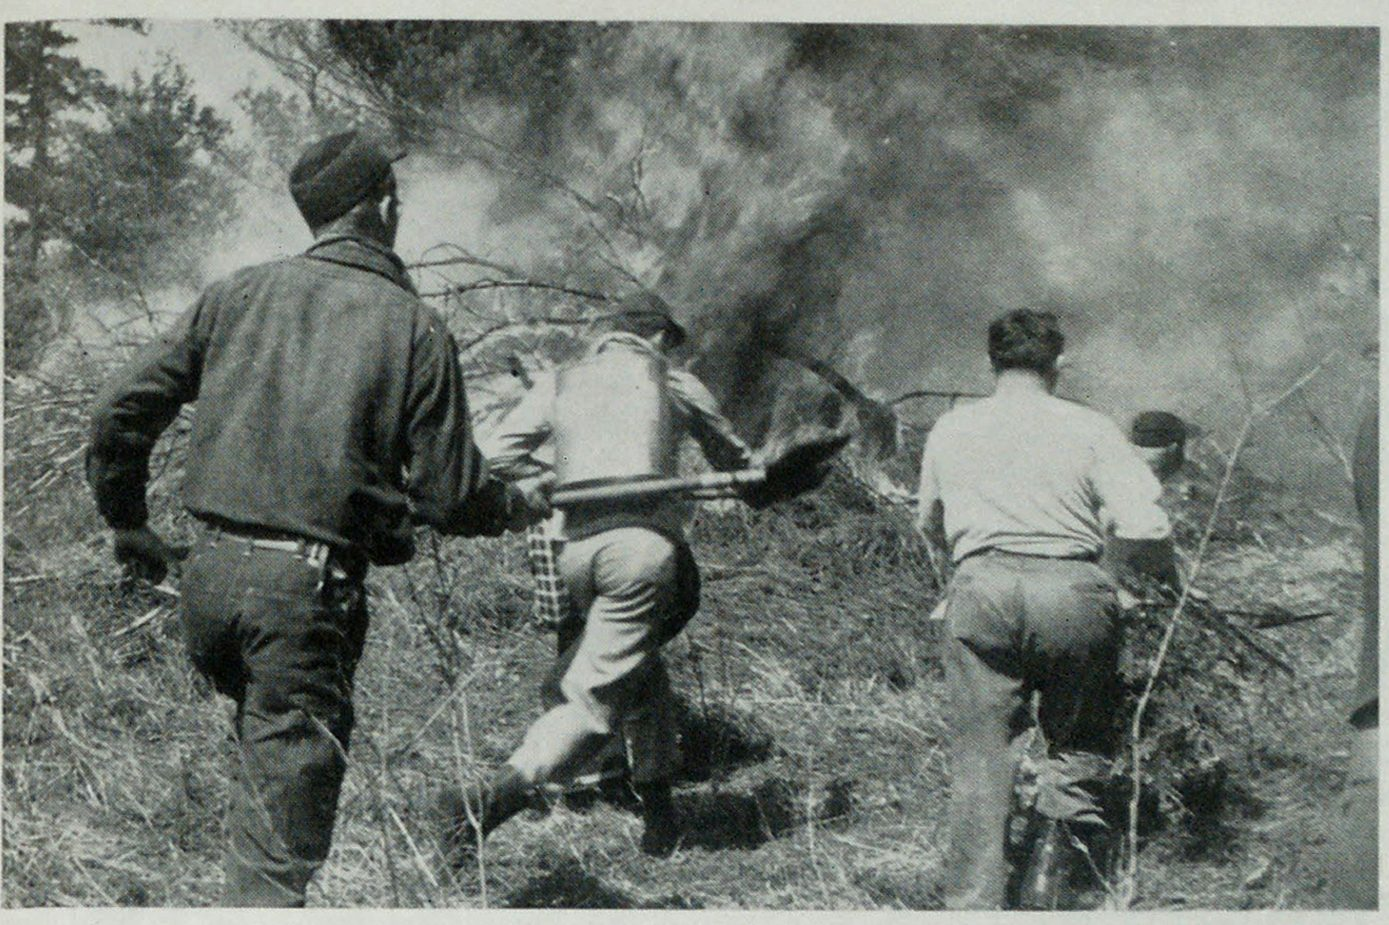 Volunteer fire fighters race into action near Claremont, N. H. It required four hours of hard work atop Bible Hill to control blaze. Fire started when high winds whipped embers from cooking fire under maple syrup kettle into grasslands